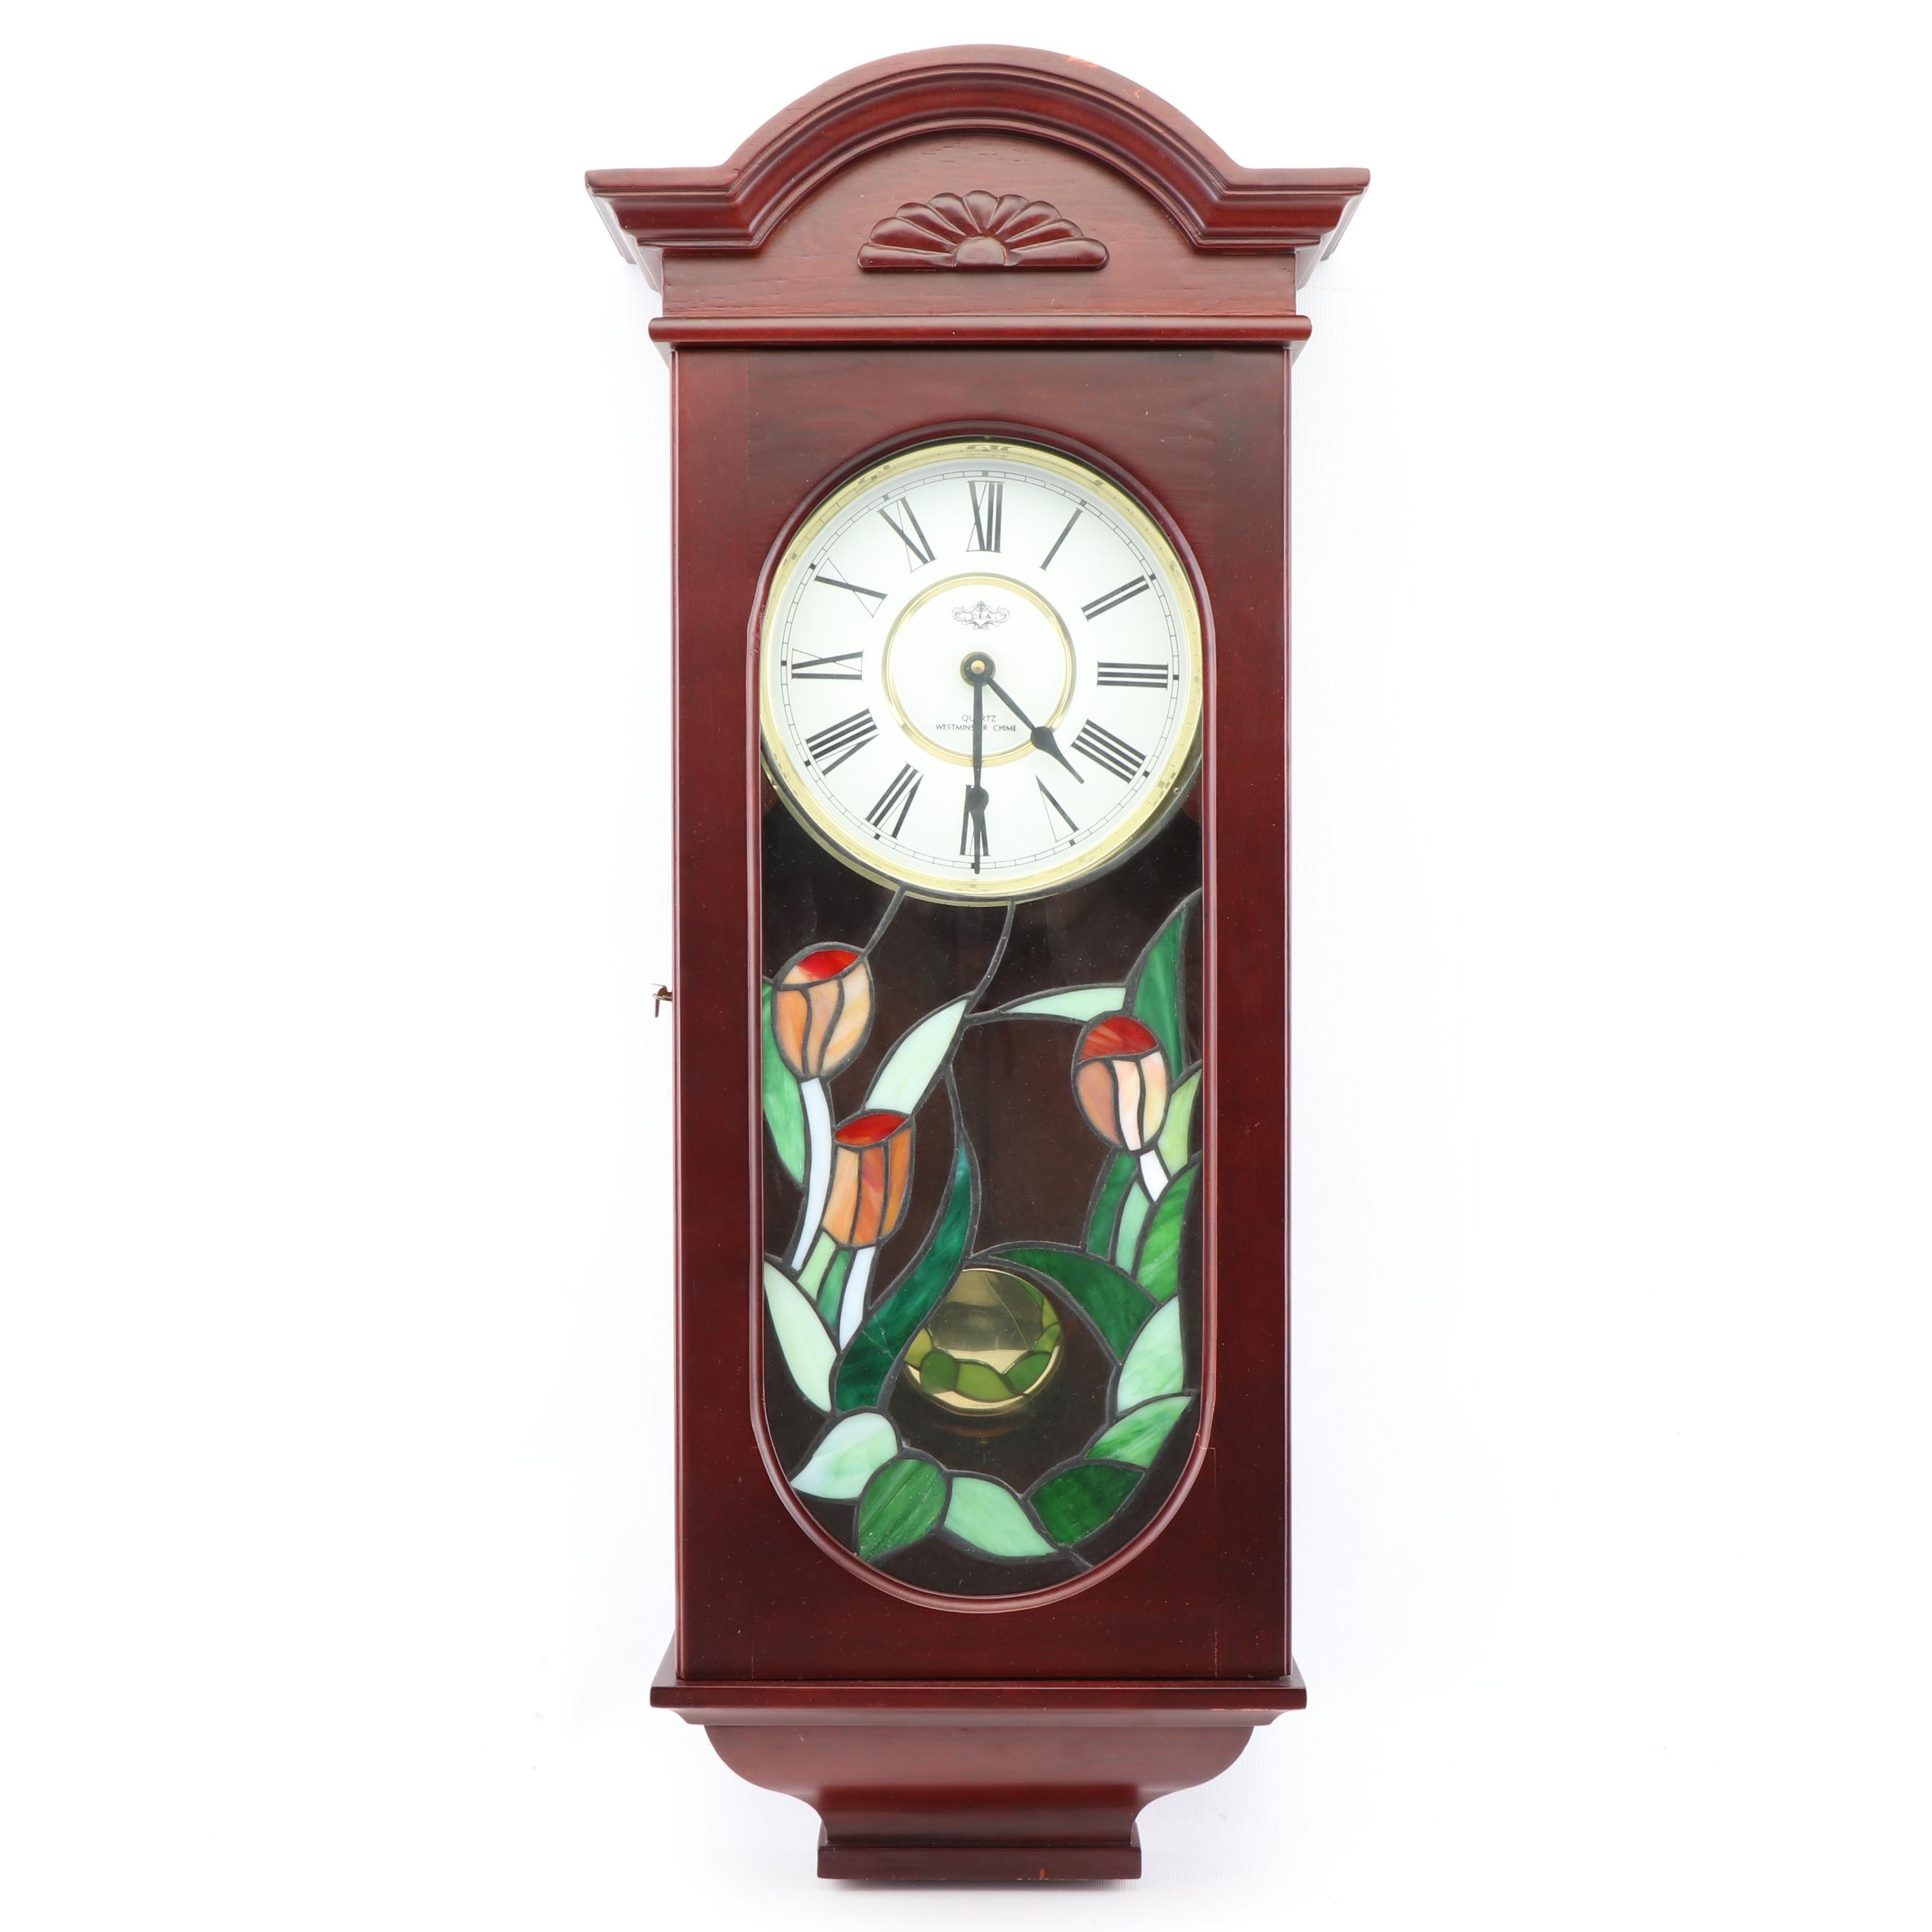 Carved Wood Wall Clock with Floral Slag Glass Accents